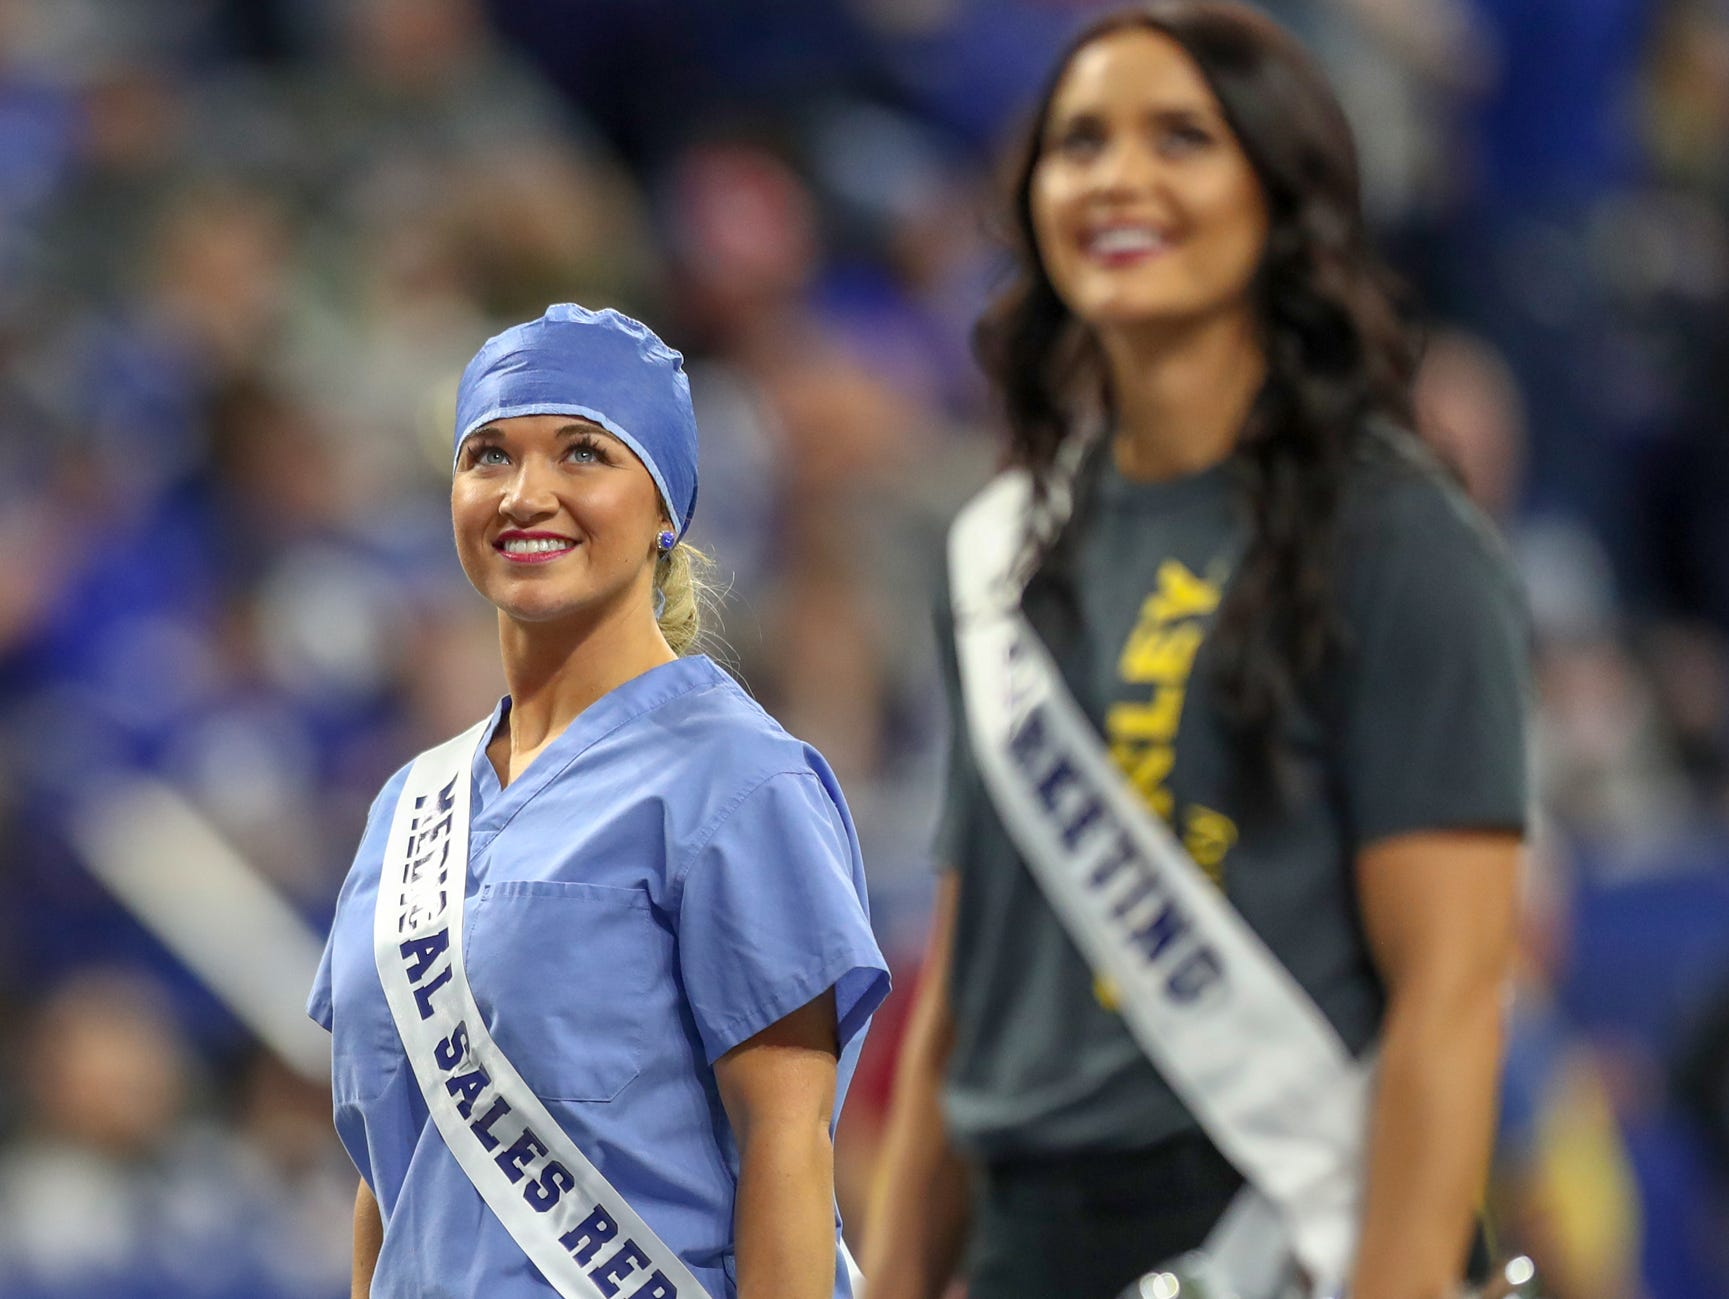 Indianapolis Colts cheerleaders wear their real world professional work attire as a uniform during the game against the New York Giants at Lucas Oil Stadium in Indianapolis on Sunday, Dec. 23, 2018.